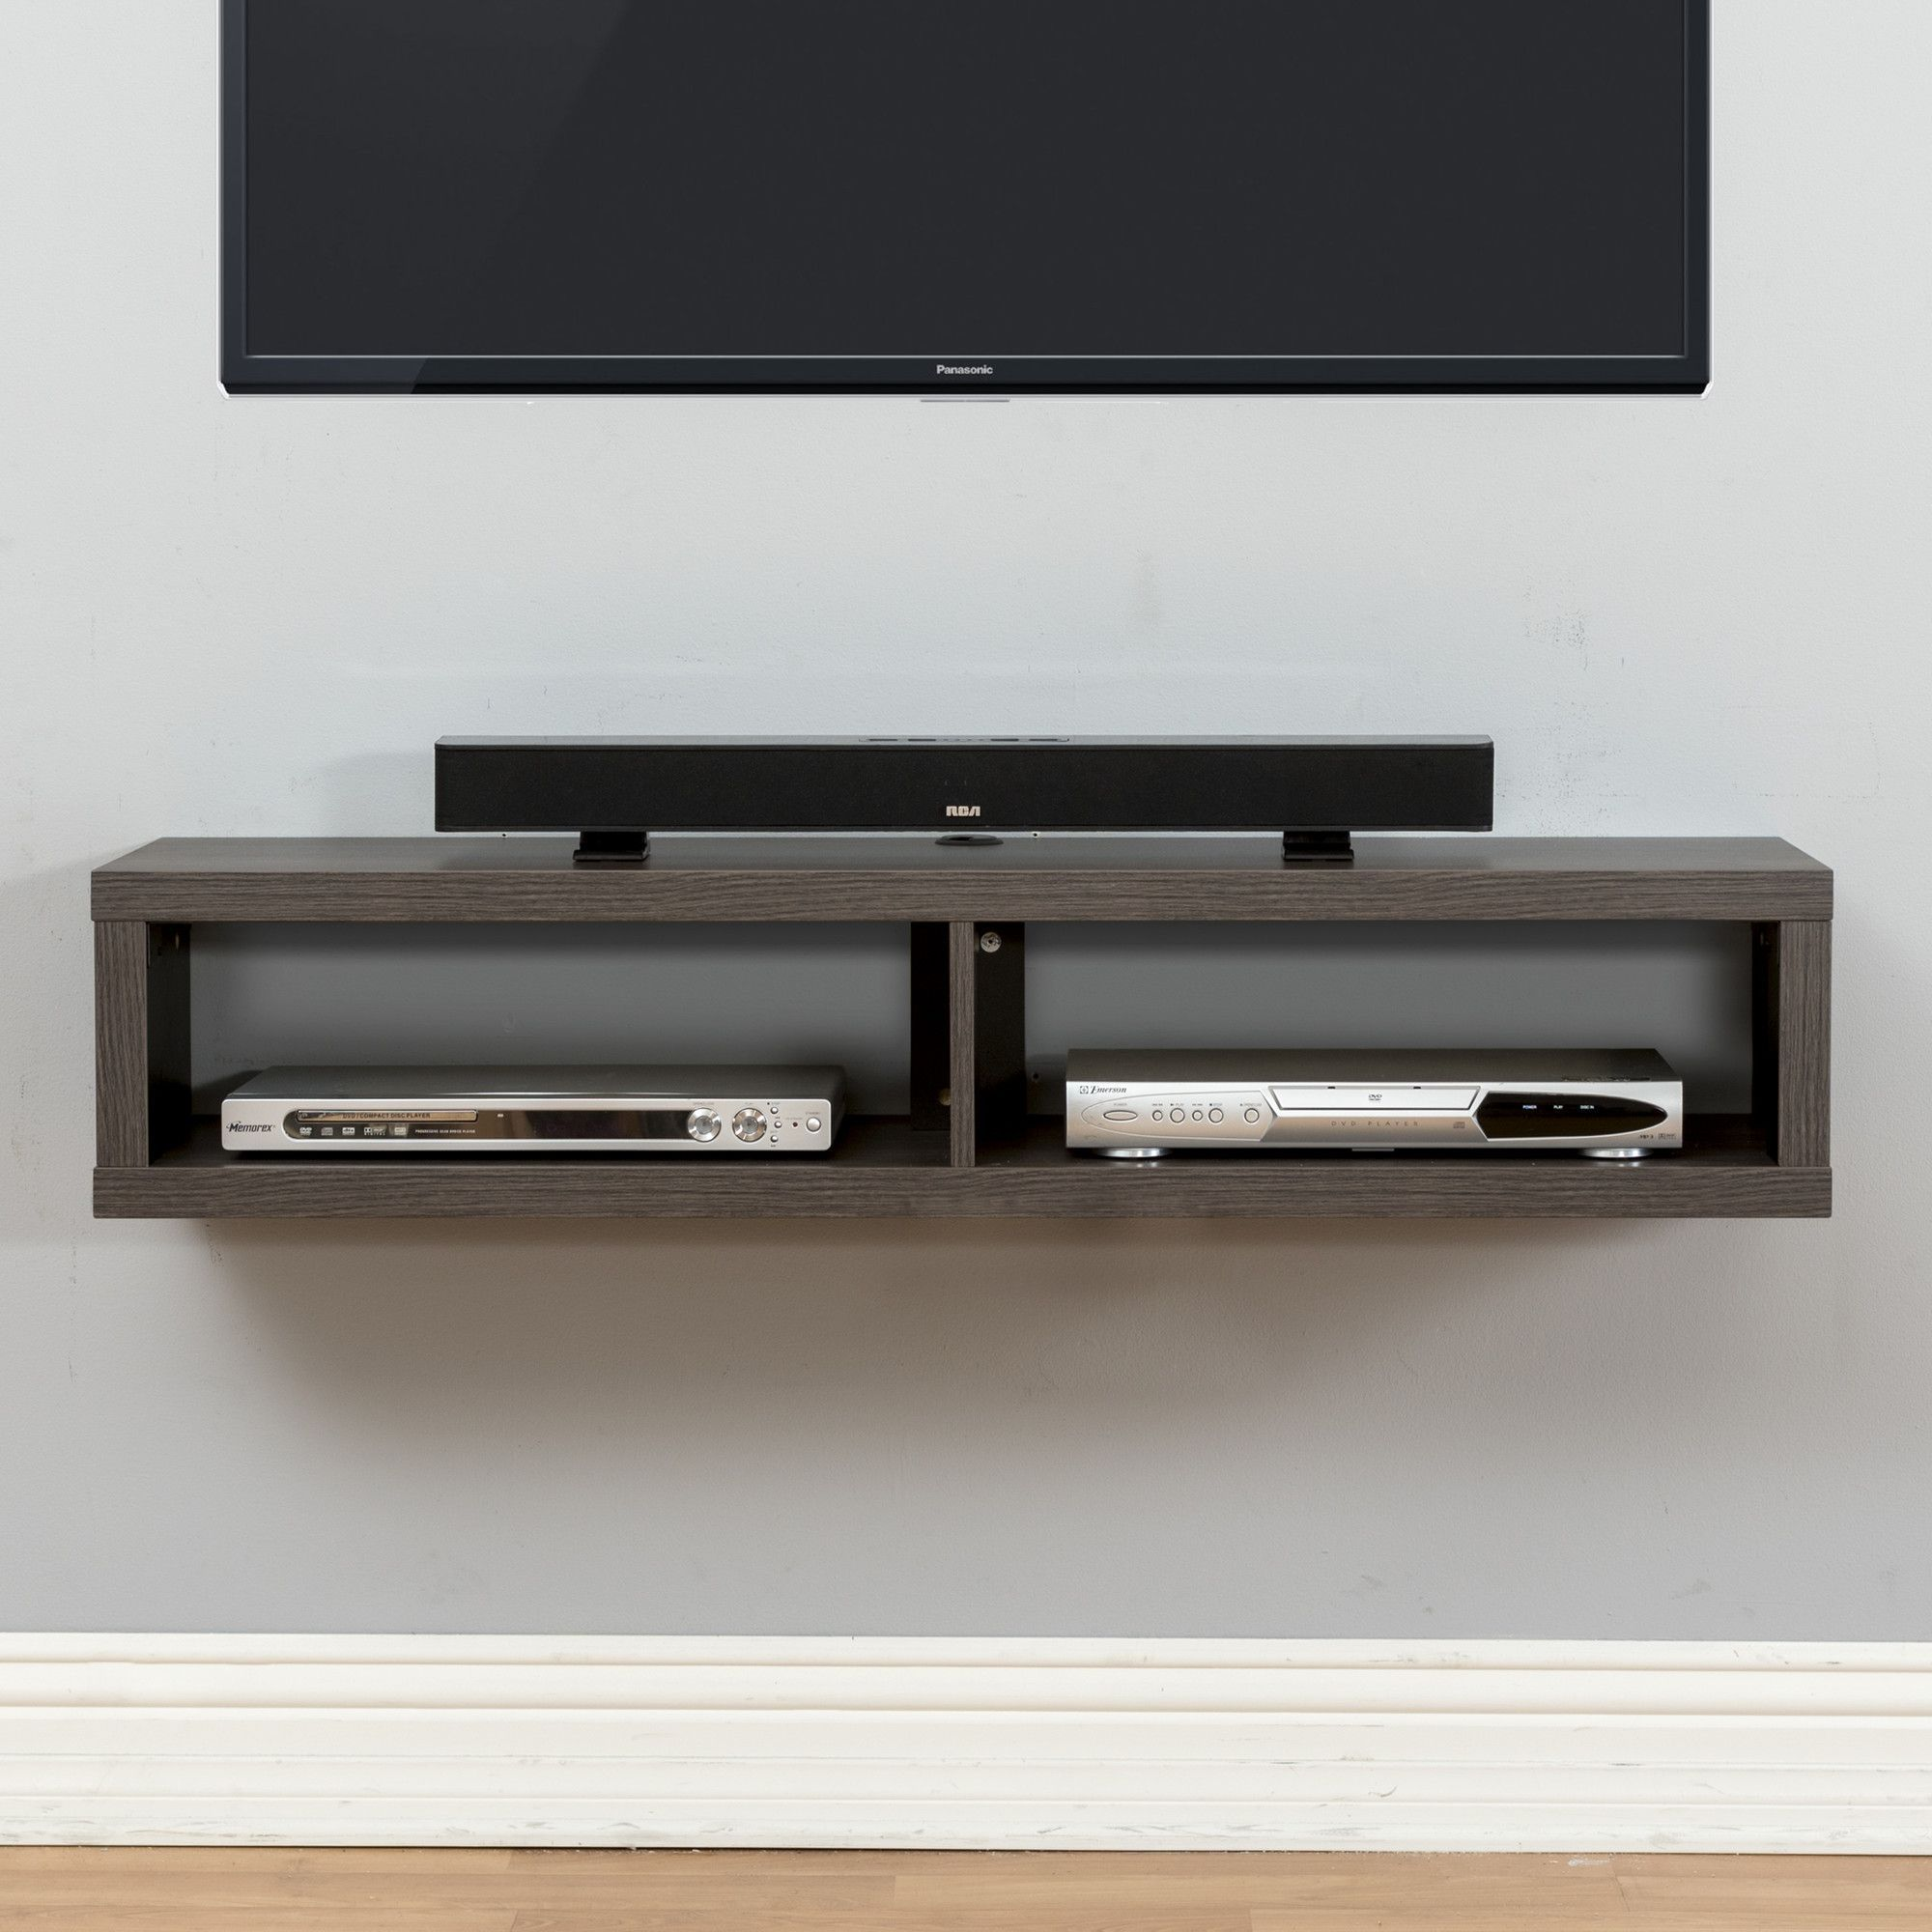 shallow wall mounted stand for tvs home decor floating wood shelves electronics holds audio video components and sound bar compliment television lbs comes with mounting hardware